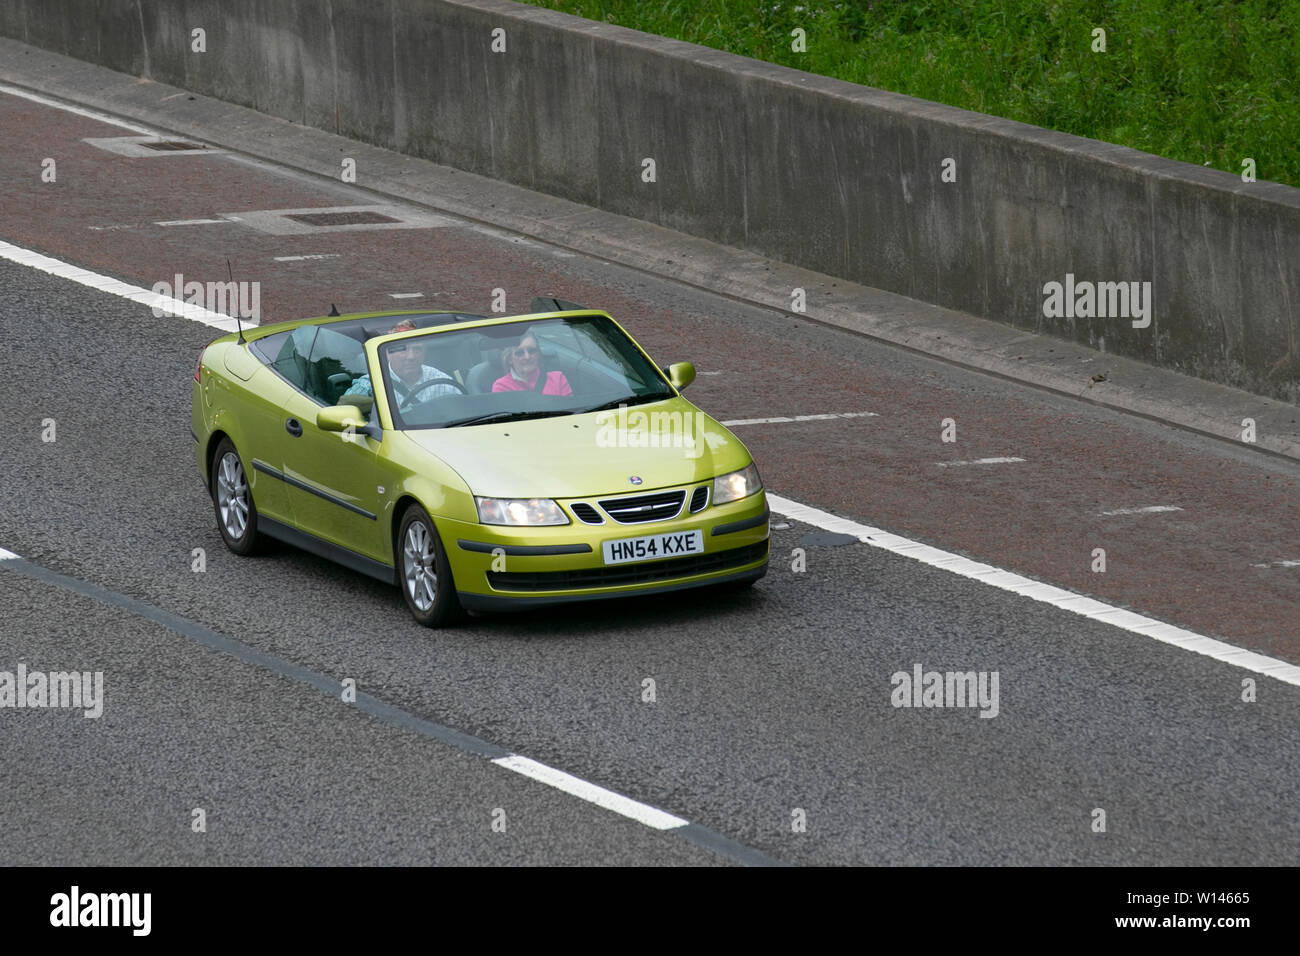 2004 yellow Saab 9-3 Linear 150 BHP S-A; M6, Lancaster, UK; Vehicular traffic, transport, modern, saloon cars, north-bound on the 3 lane highway. - Stock Image